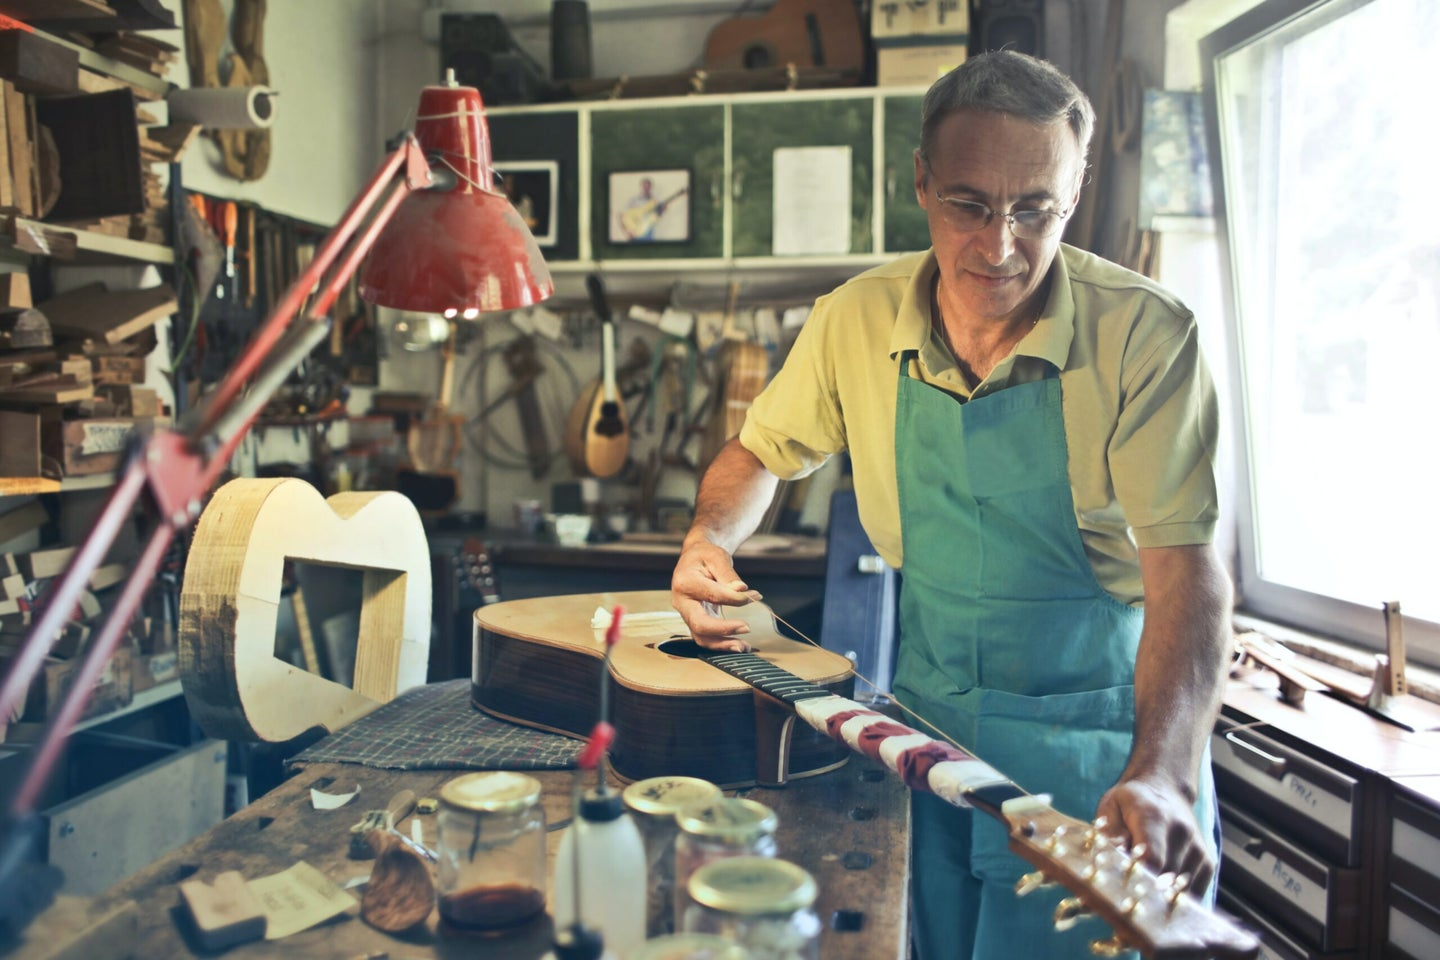 guy working on a guitar in a workshop